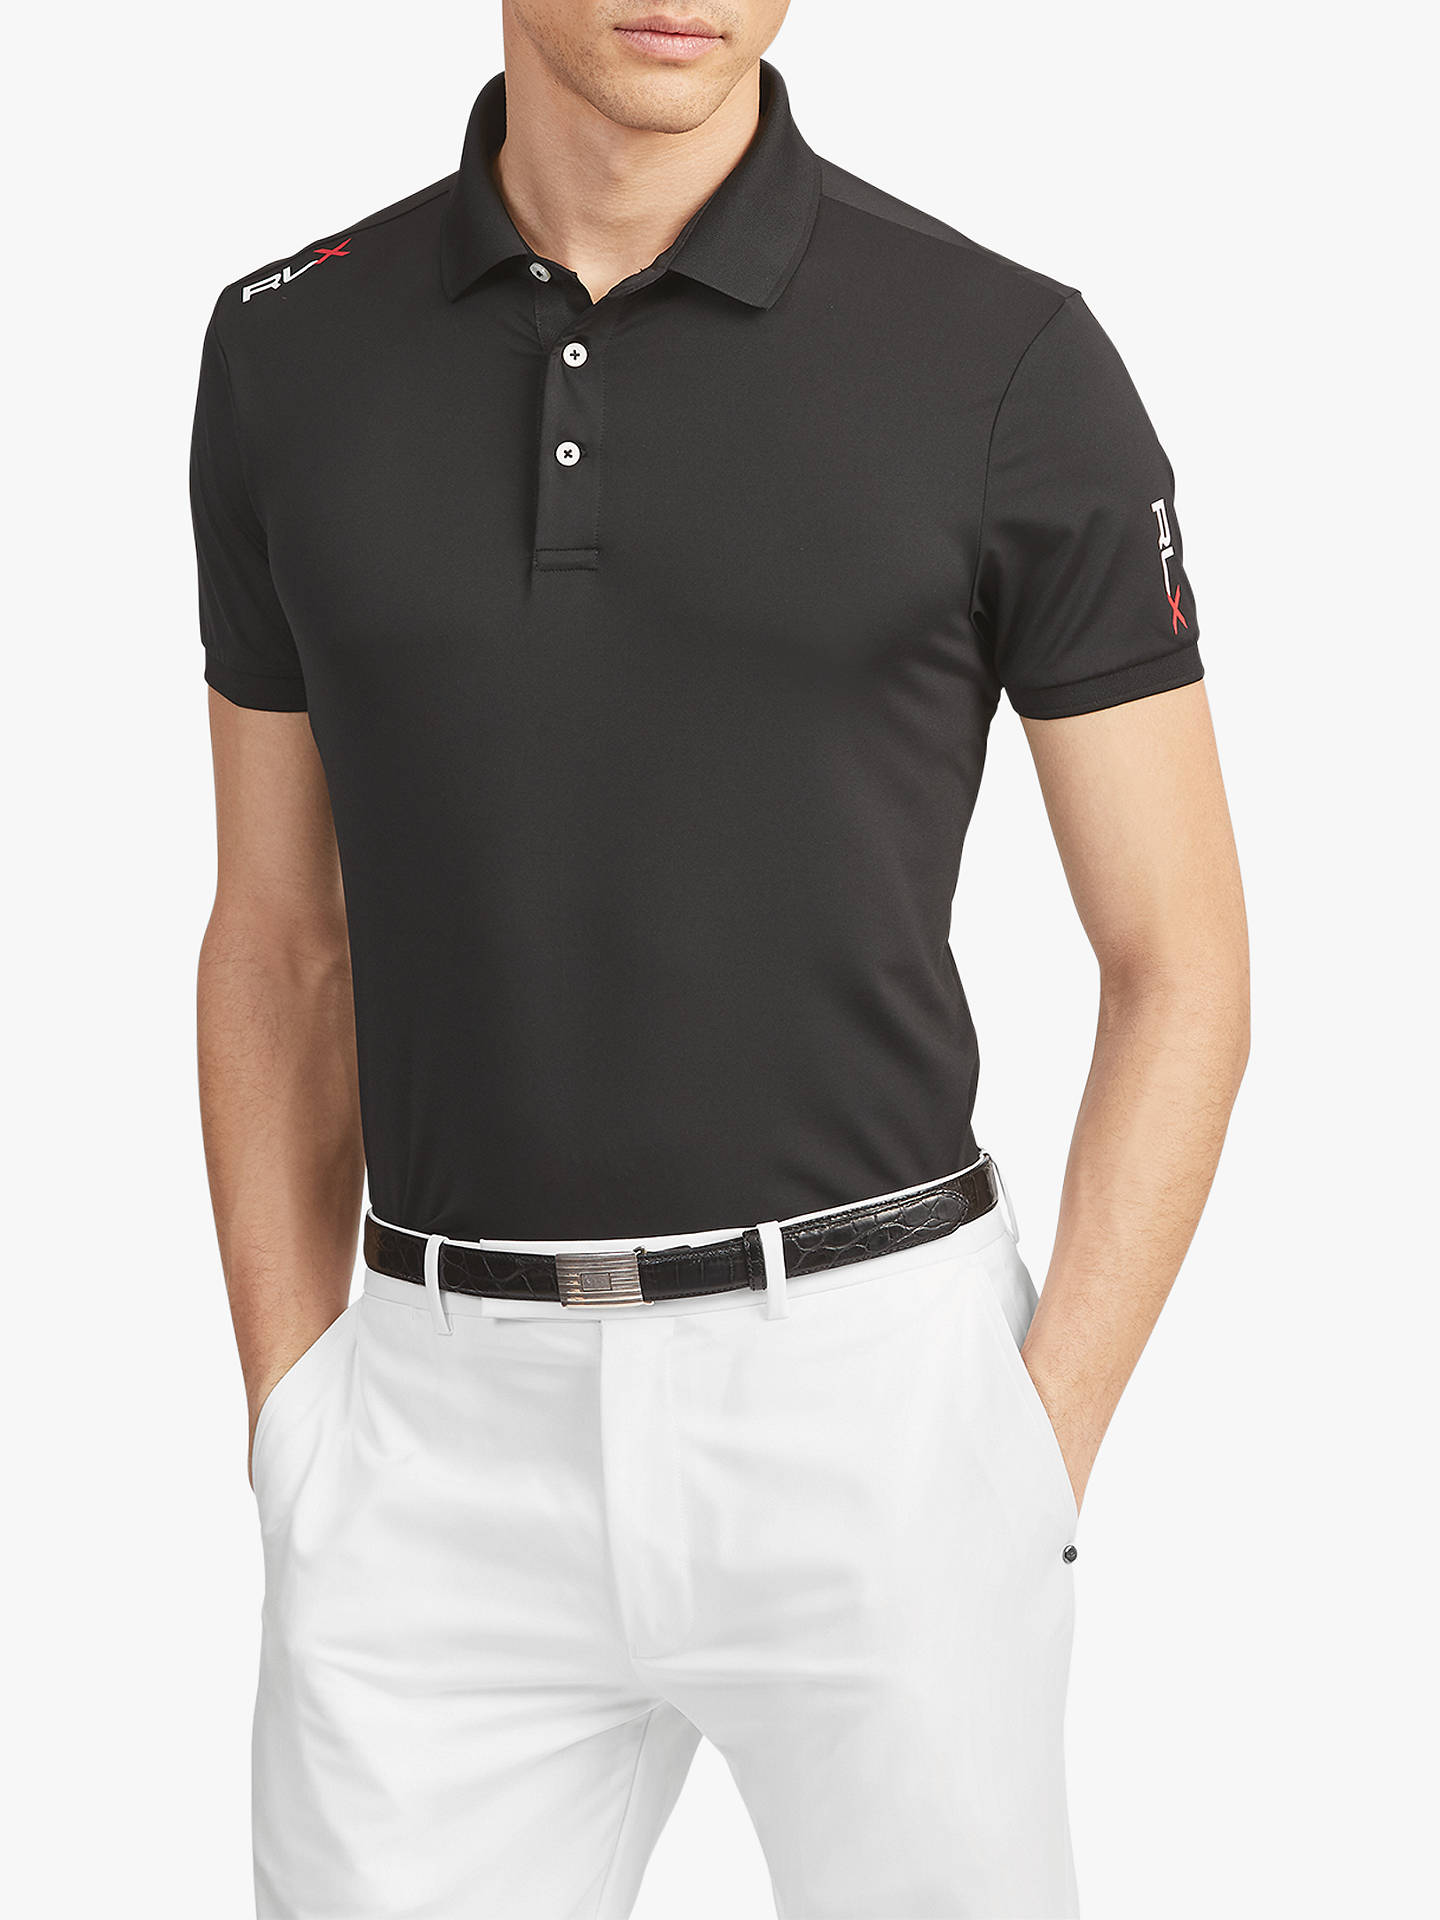 d3bf215a8 Buy Polo Golf by Ralph Lauren Active Fit Performance Polo Shirt, Polo  Black, S ...